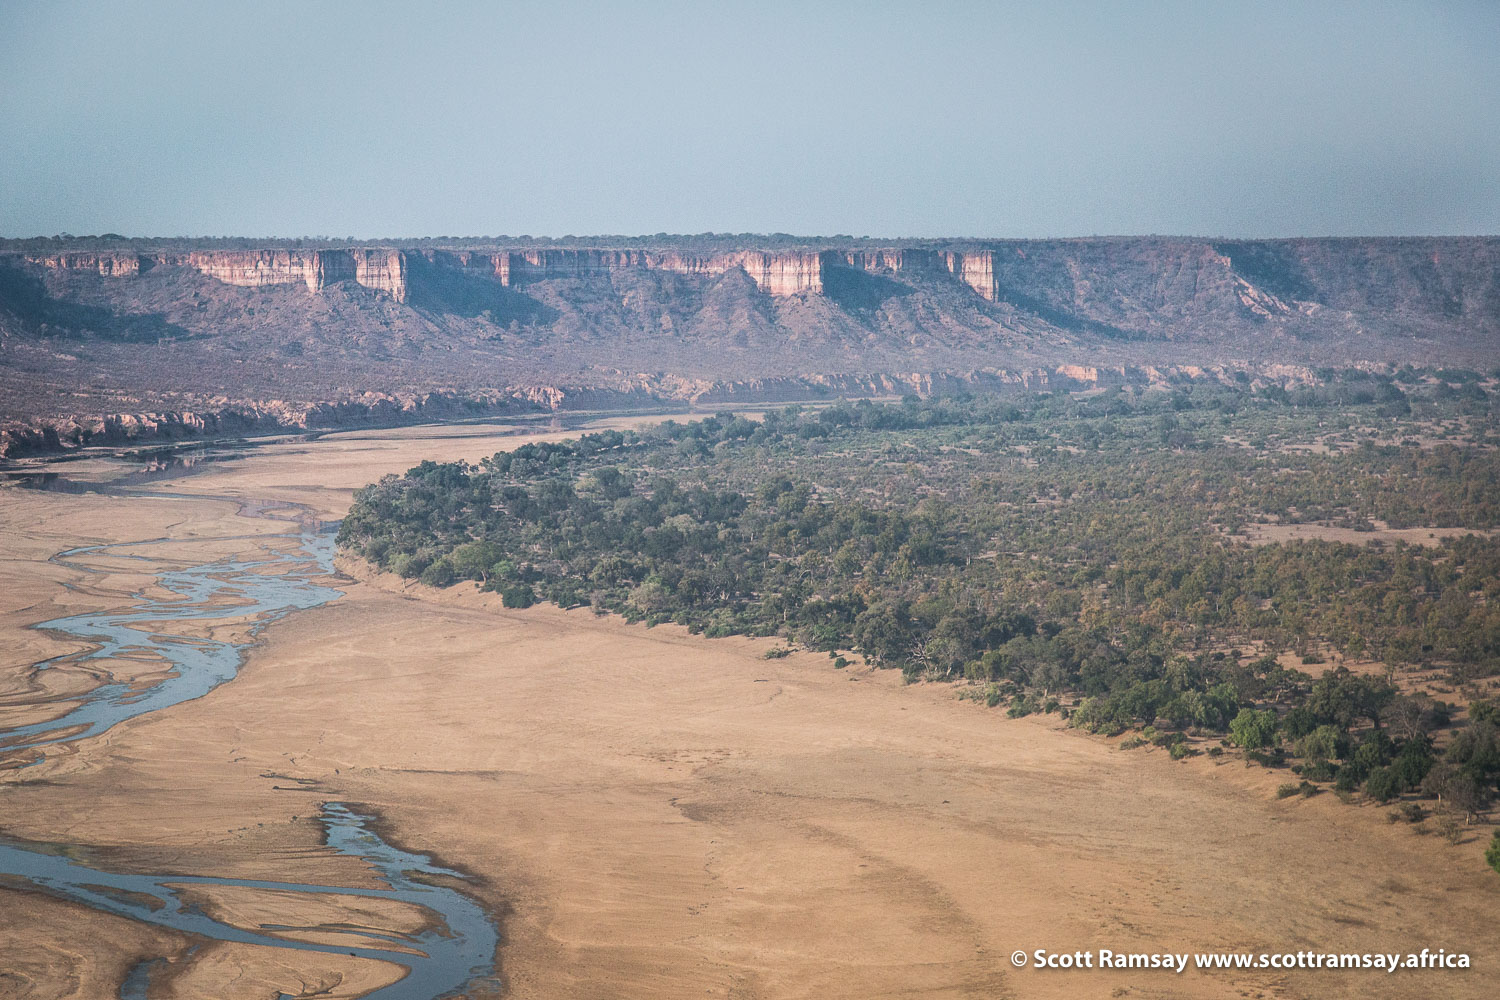 Flying over the Runde River, with the Chilojo Cliffs in the background. In dry season of winter (June to October), the river is very low (as pictured). In rainy season from January to March, the entire river floods.